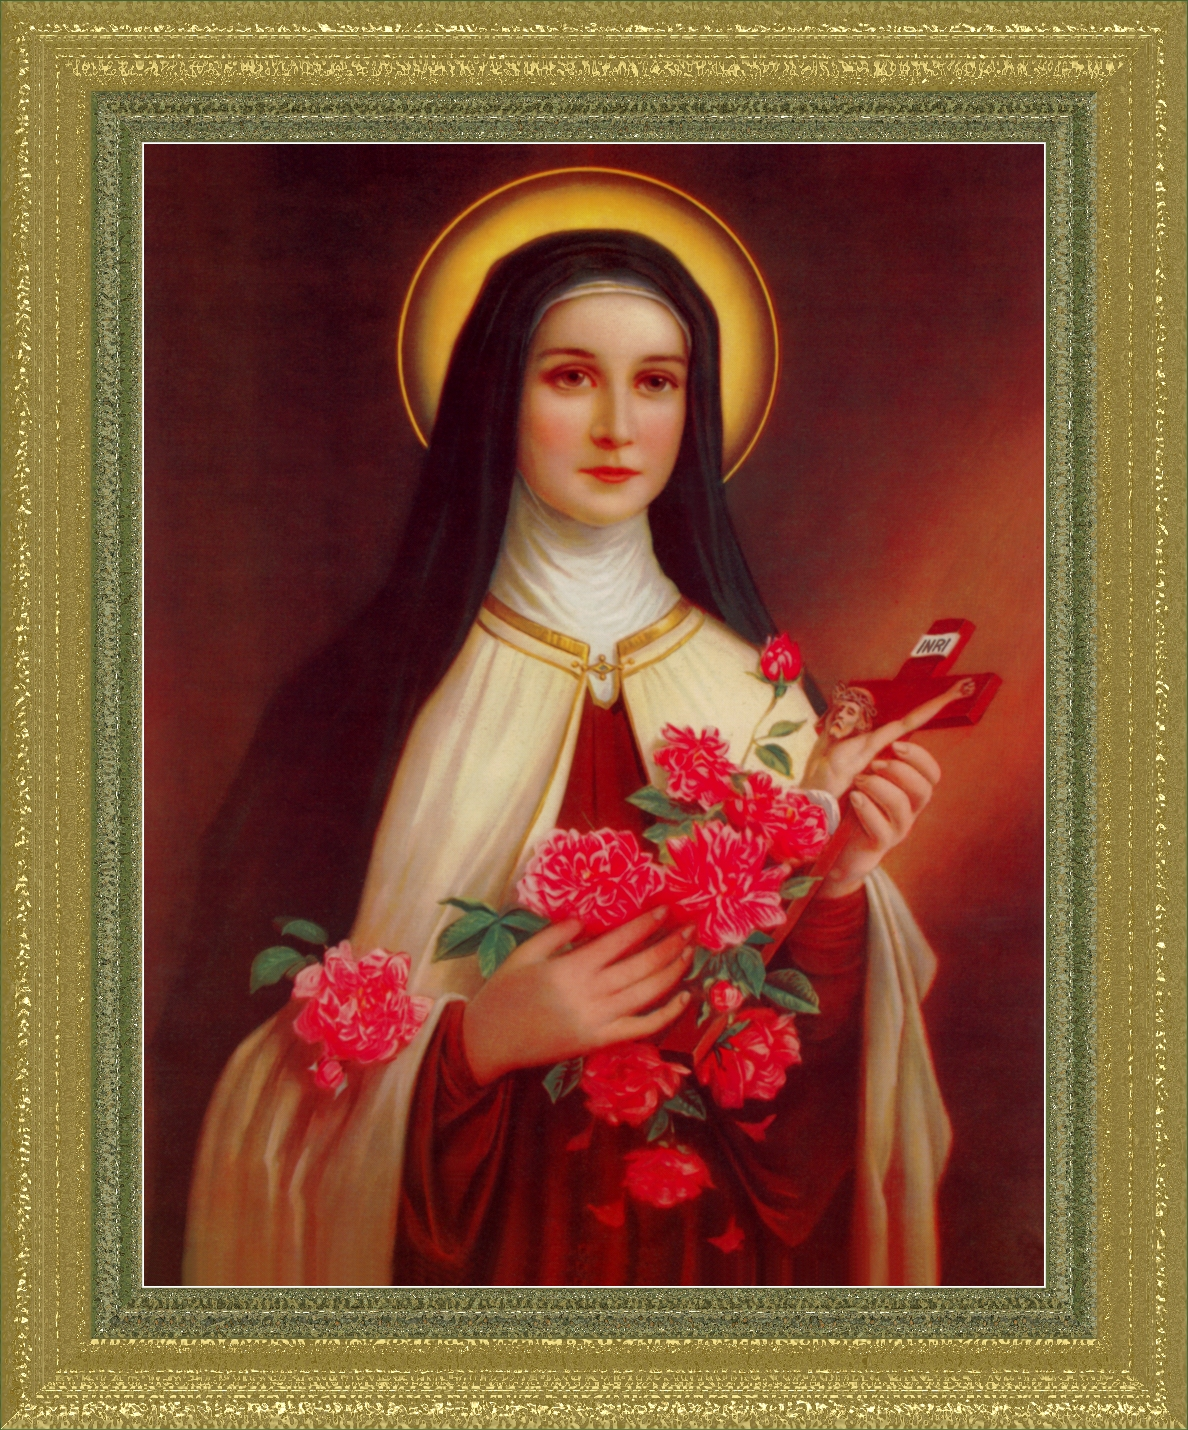 St therese rose stories